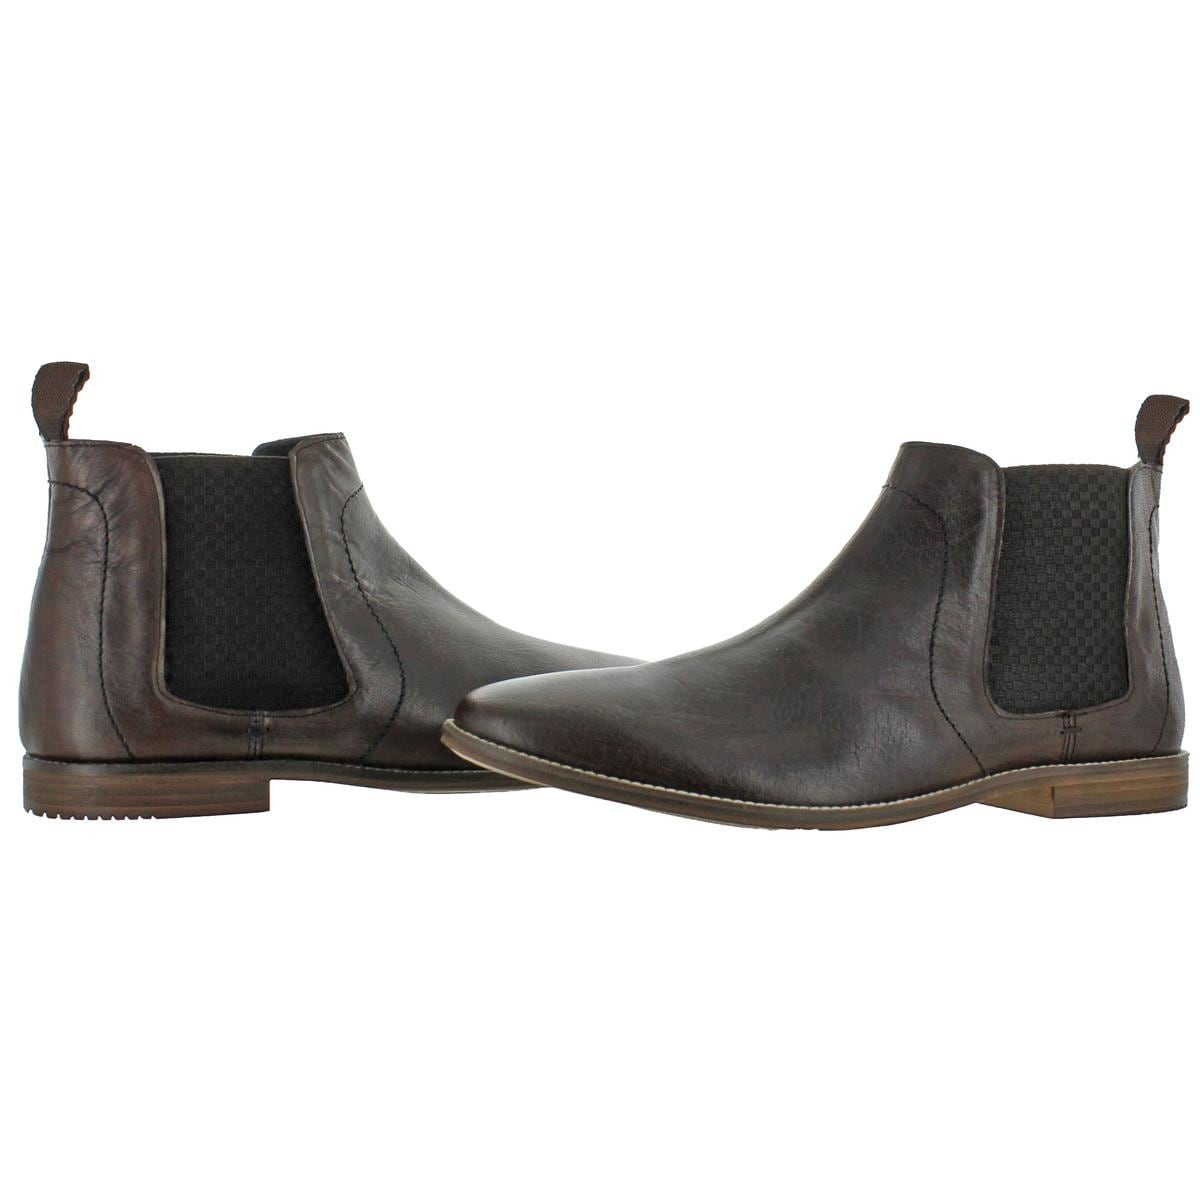 485651450b0 Ben Sherman Mens Gabe Chelsea Boots Padded Insole Formal